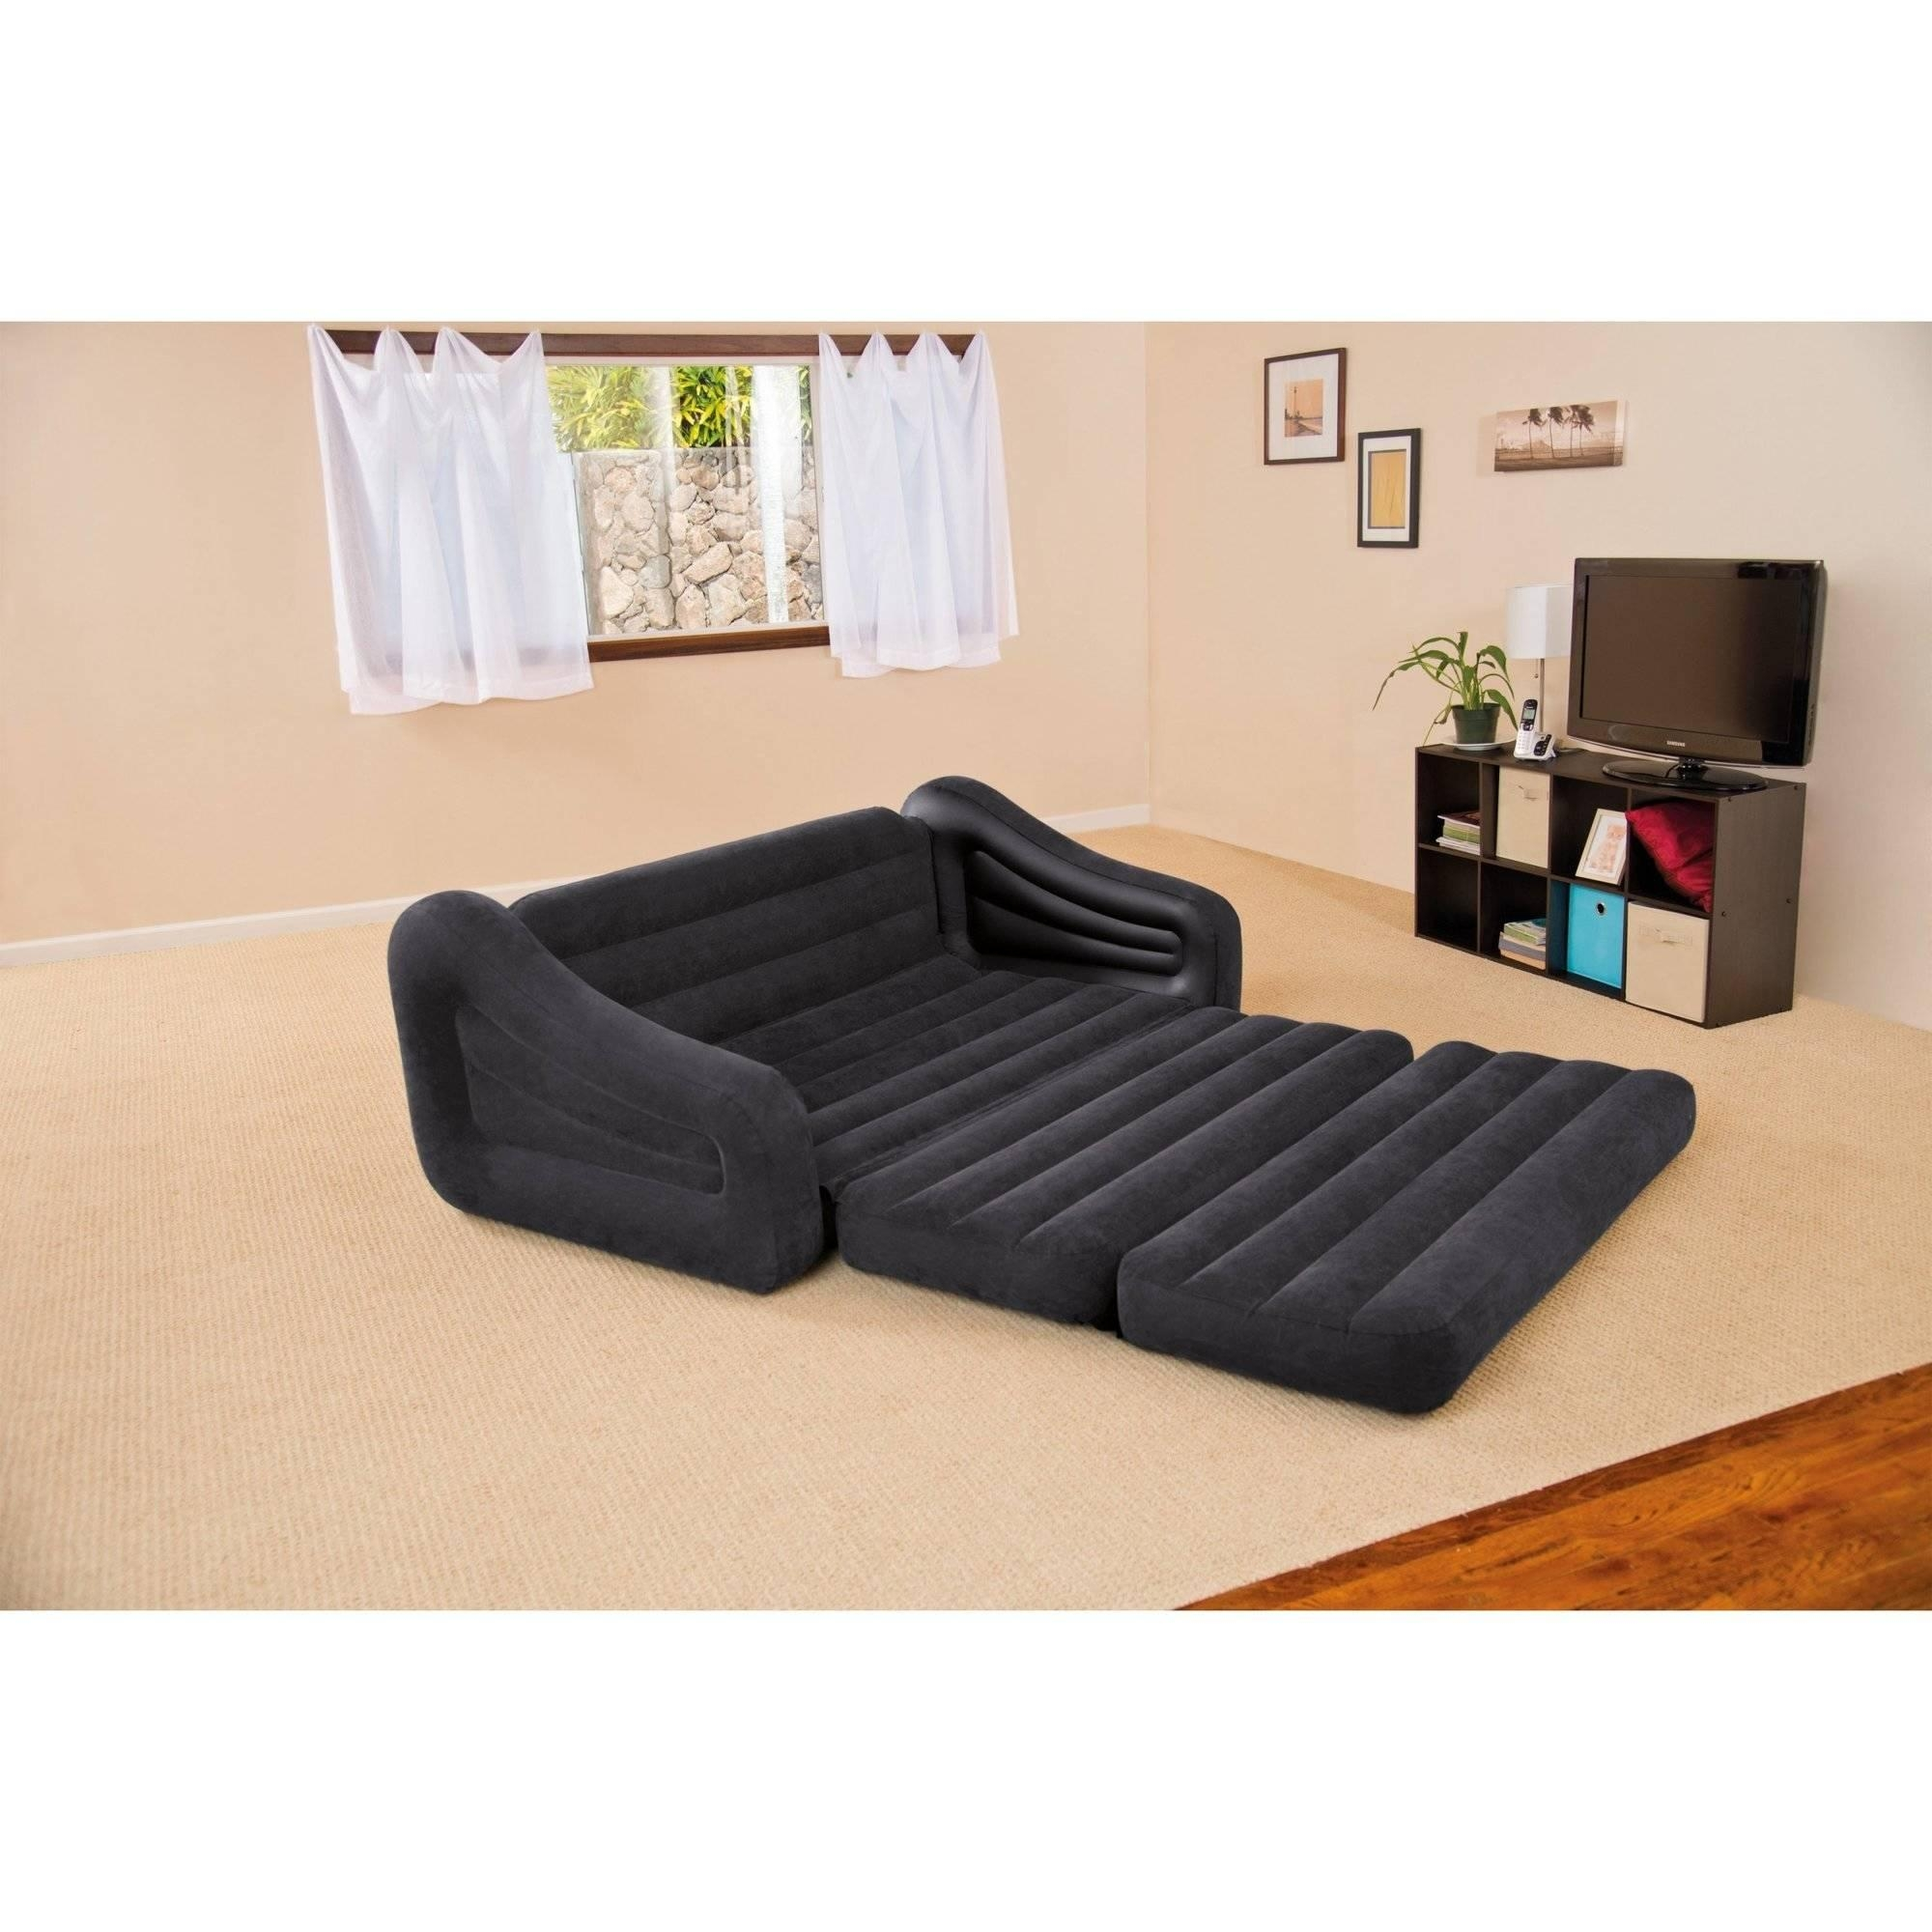 Intex Queen Inflatable Pull Out Sofa Bed – Walmart With Regard To Sleep Number Sofa Beds (View 17 of 20)